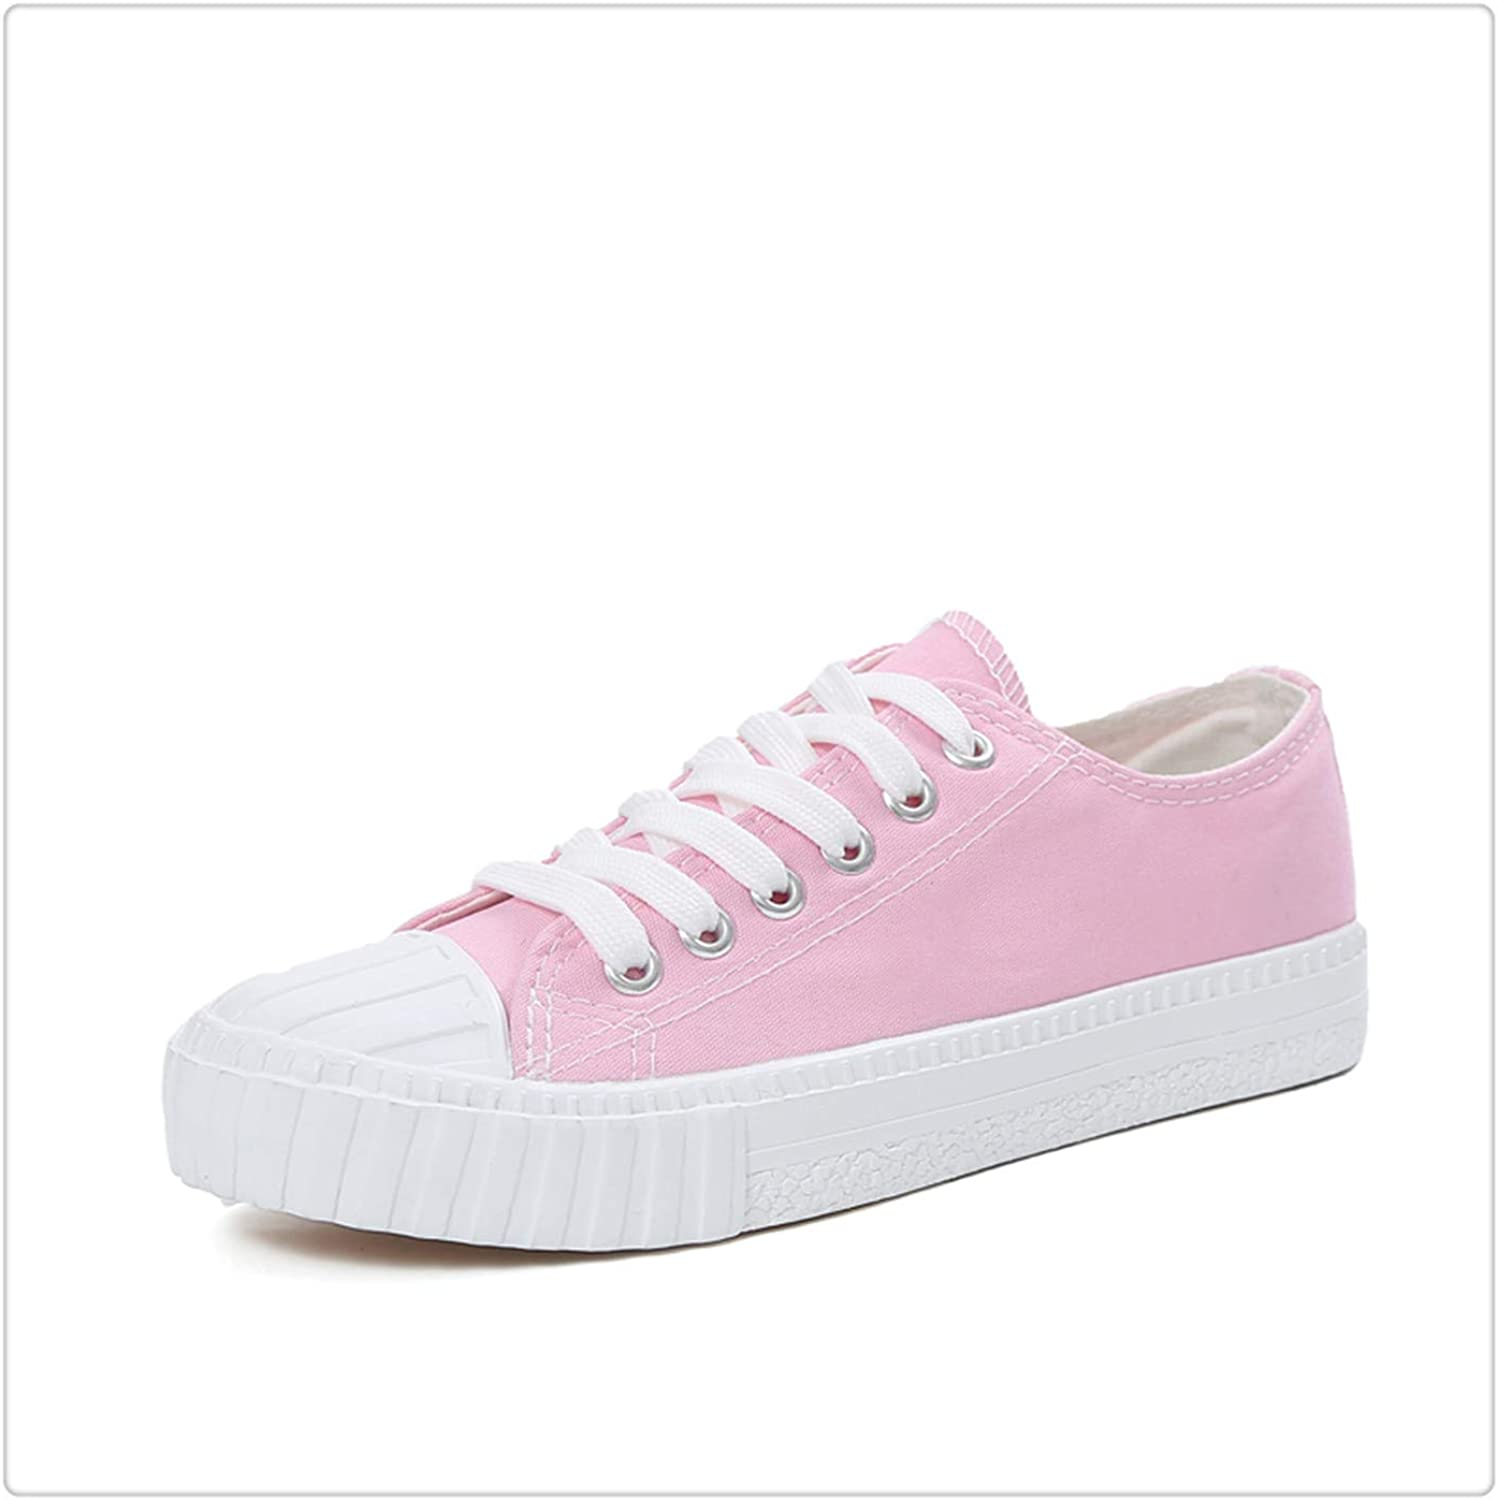 HCHBE& Solid White Canvas shoes Free Creation Graffiti shoes Spring Autumn Women's Vulcanize shoes Pink Female Sneakers Casual 2019 Pink Canvas shoes 6